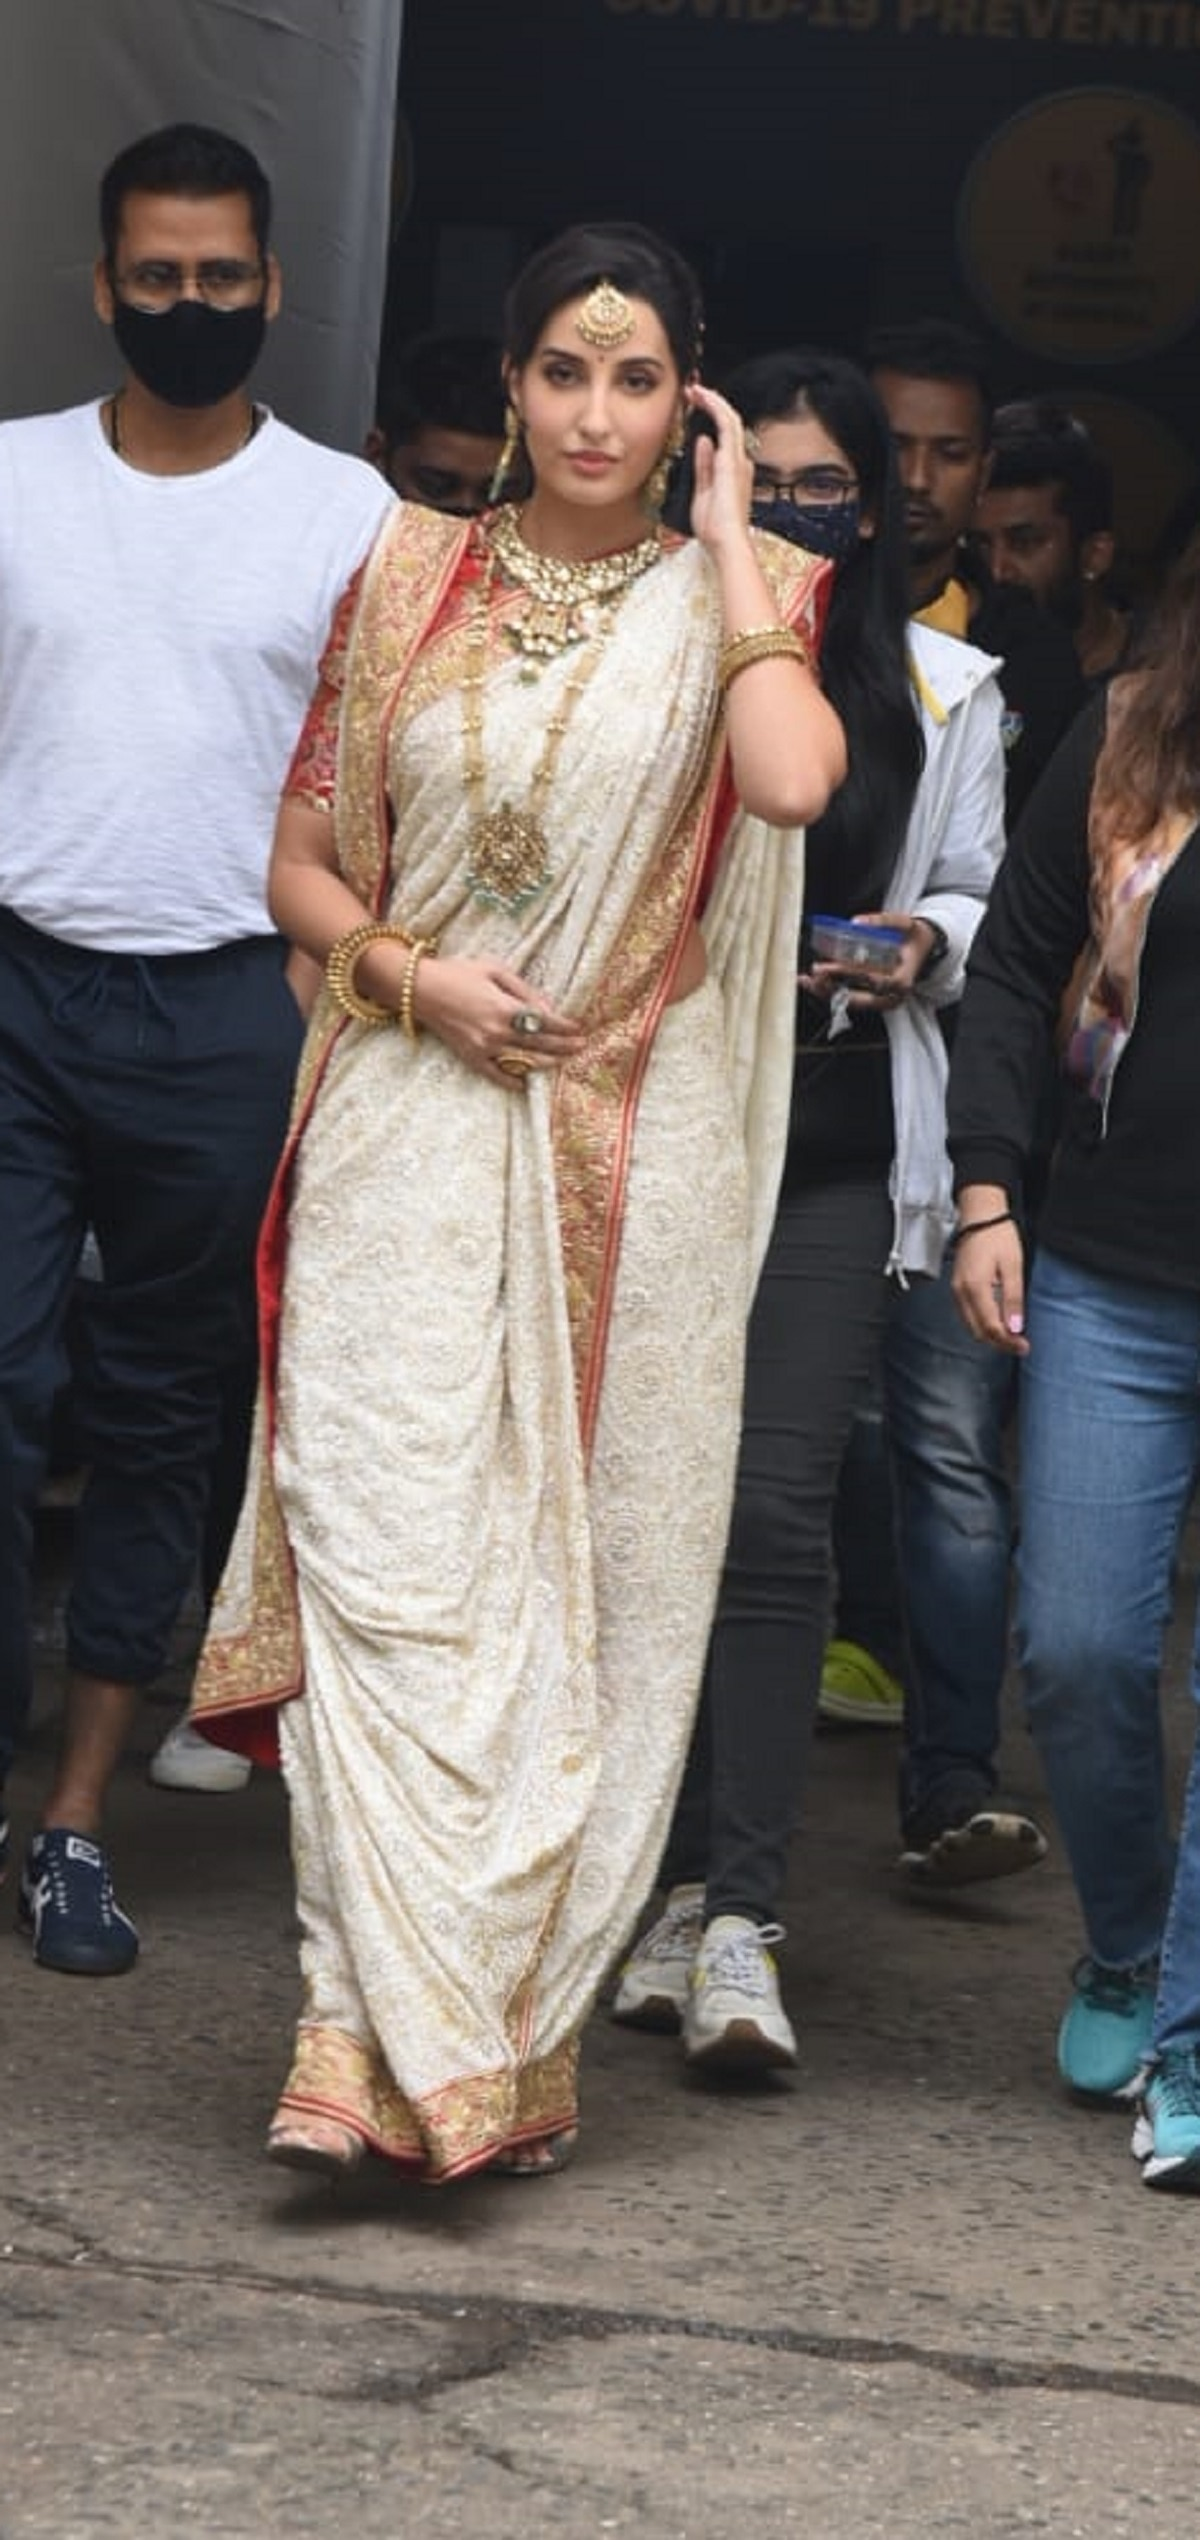 Nora Fatehi in laal paad shada saree and gold jewellery is at her traditional best. See pics - Lifestyle News